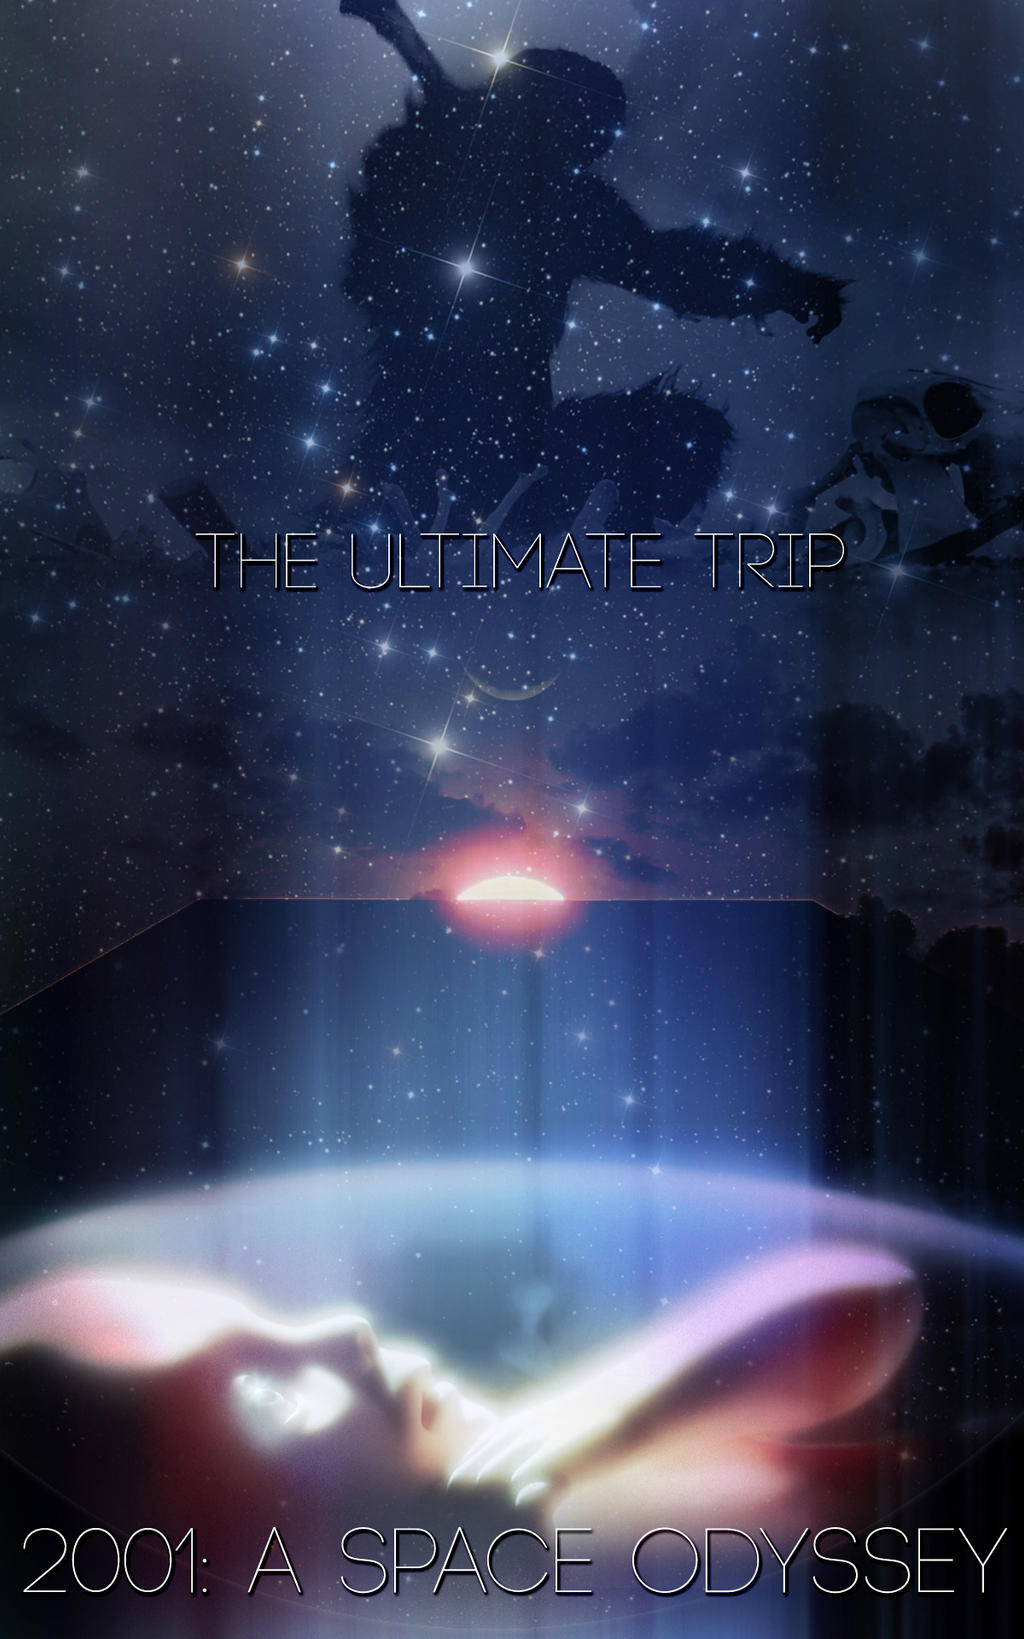 The Ultimate Trip by nuke-vizard